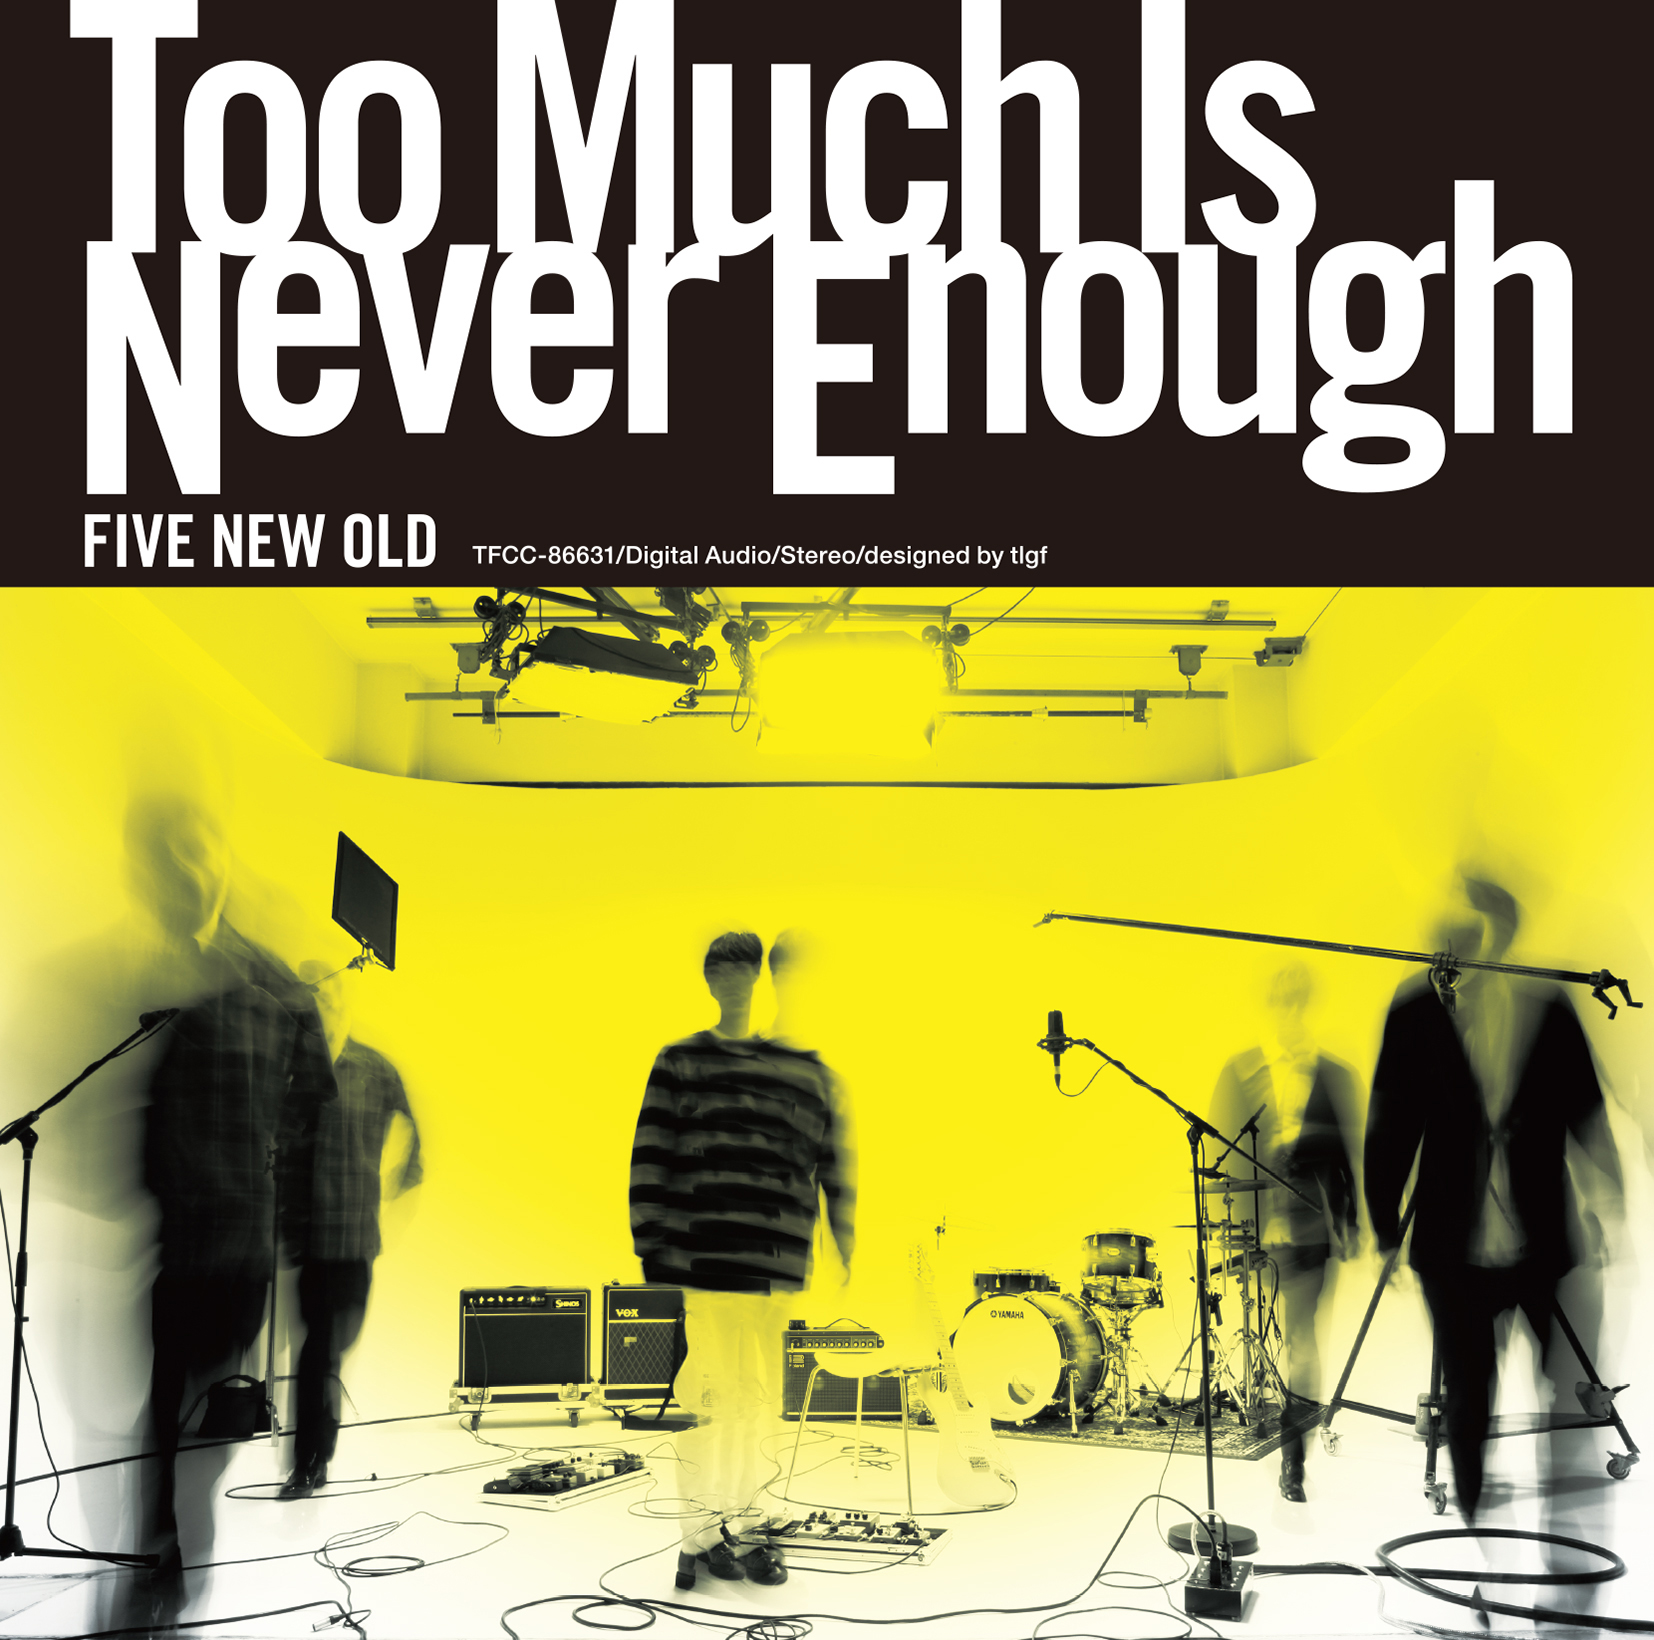 FIVE NEW OLD Major 1st Album「Too Much Is Never Enough」